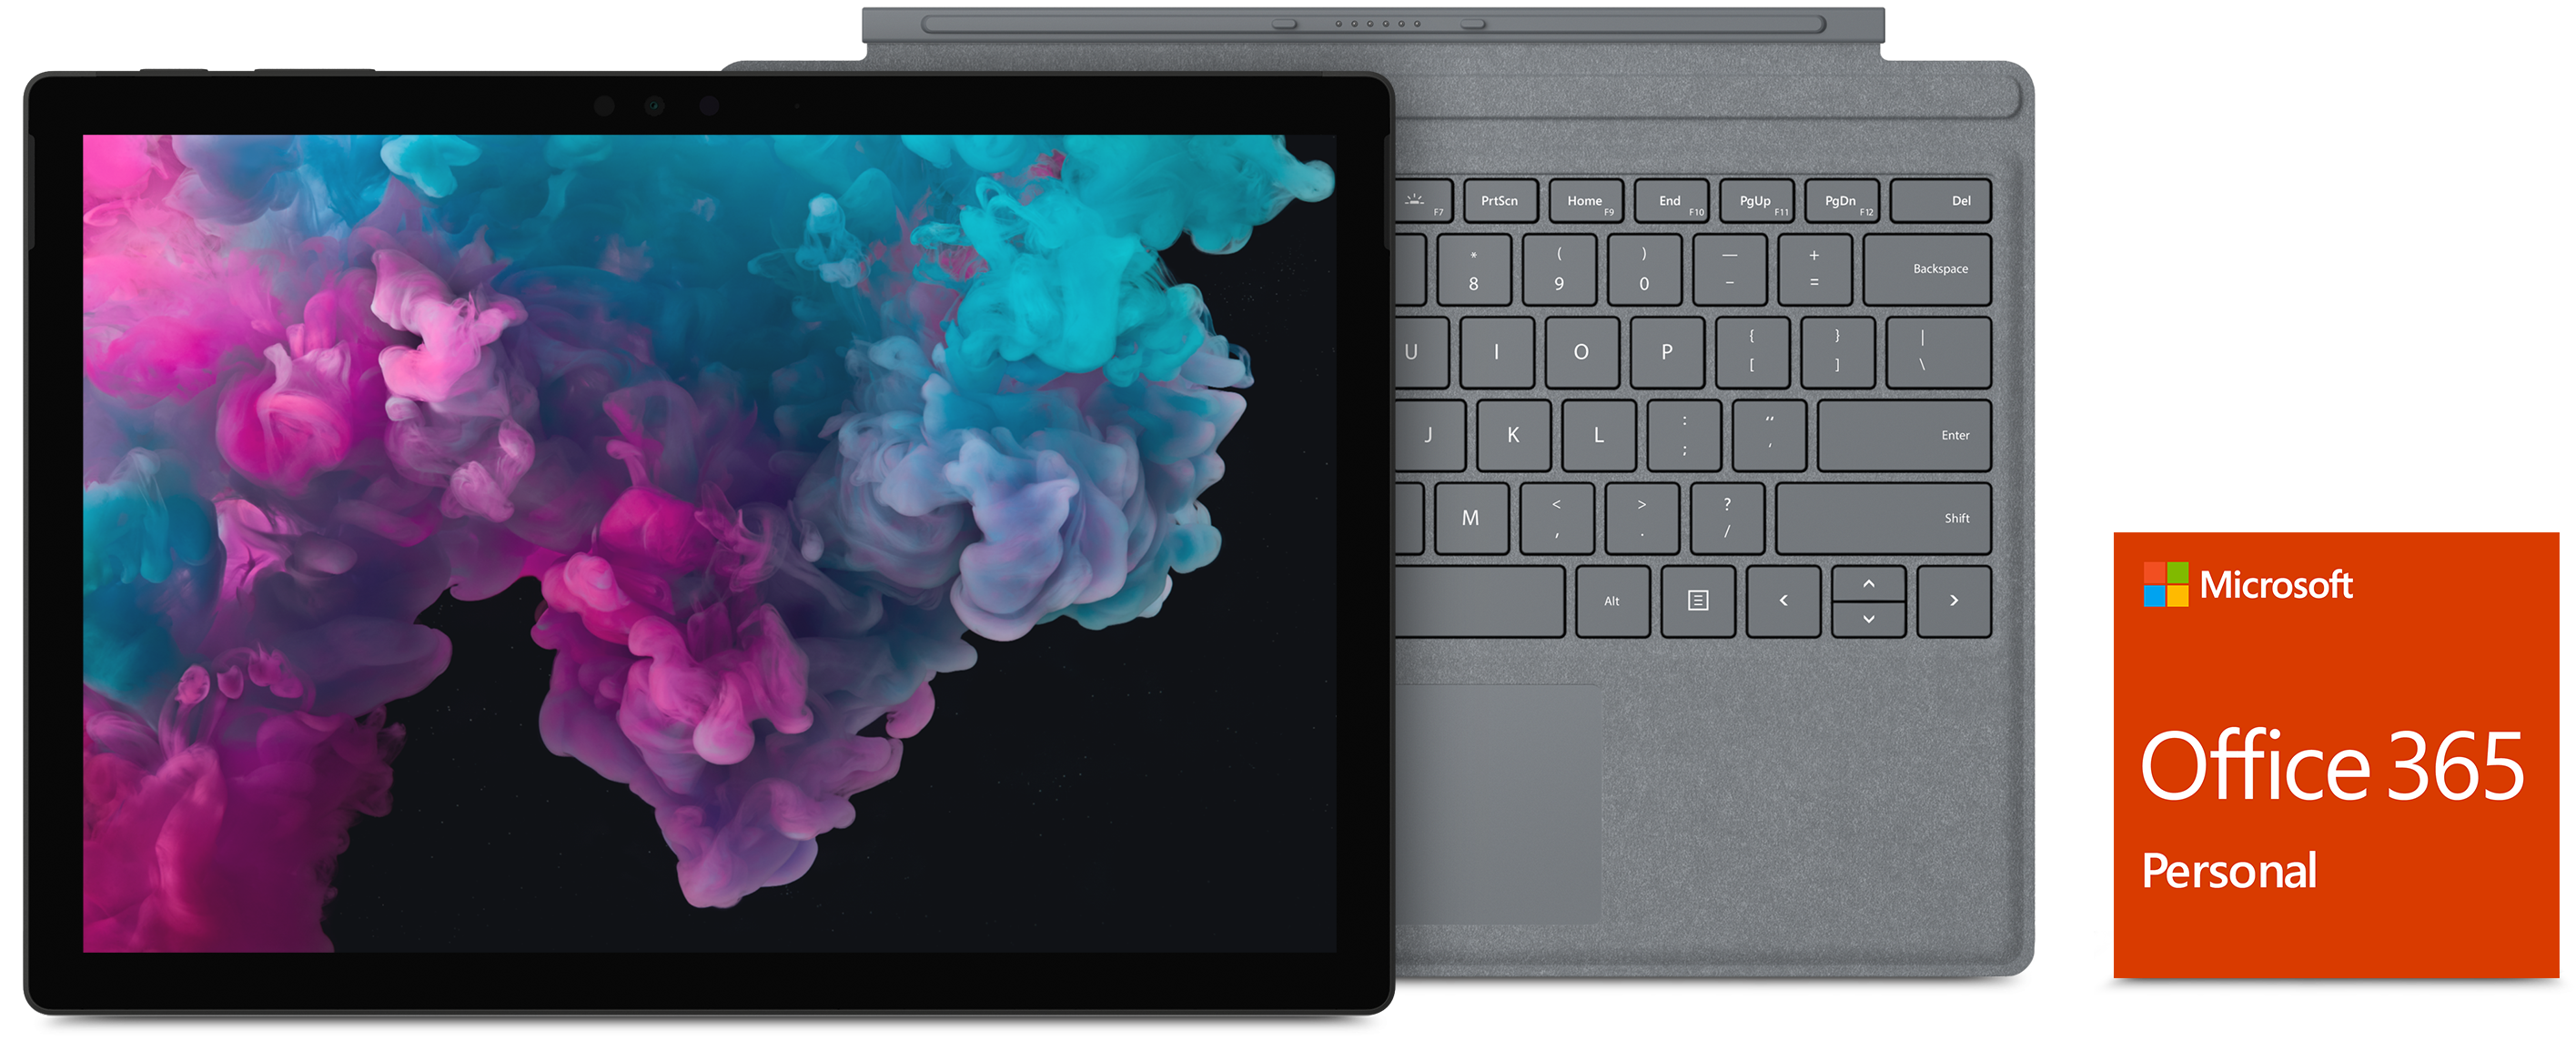 Surface Pro 6 with Type Cover and Office 365